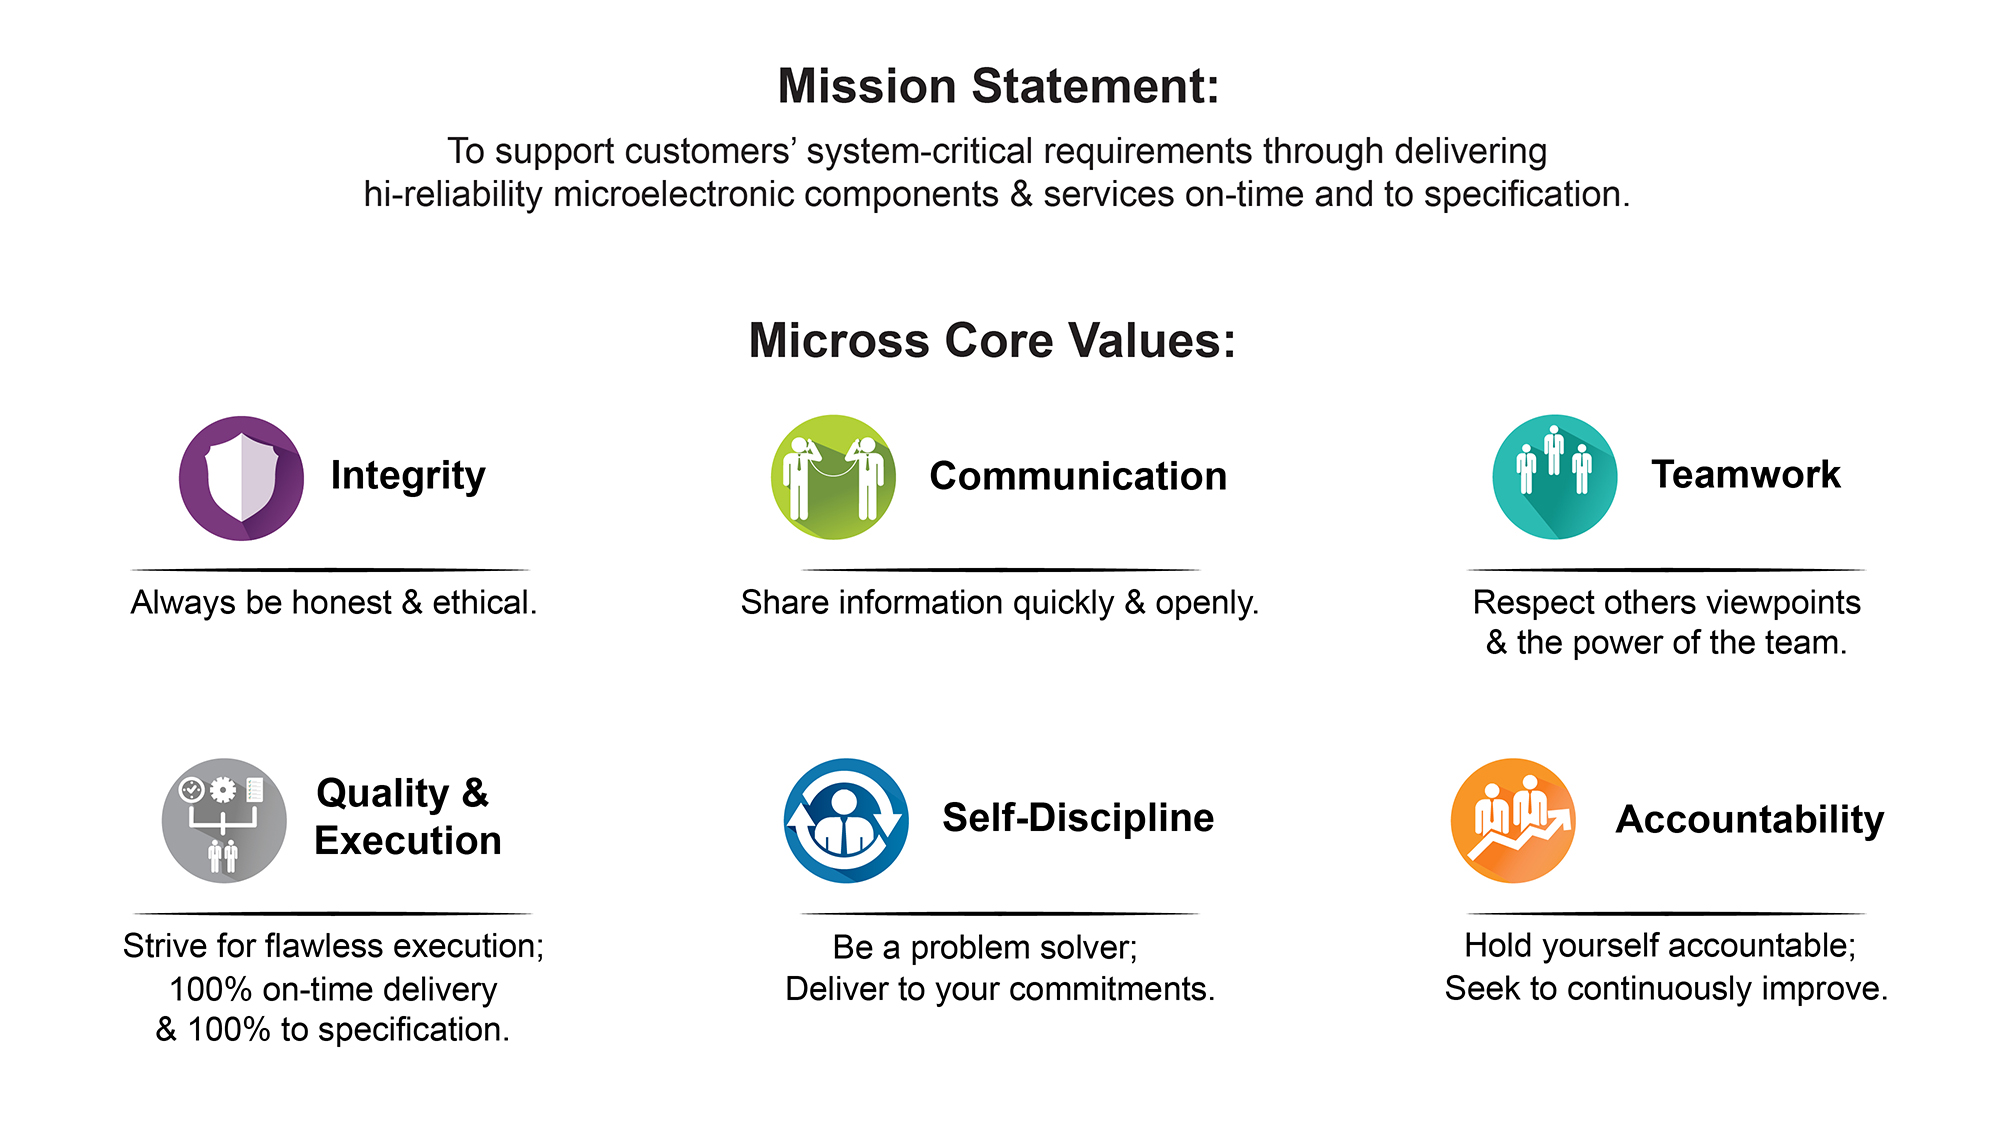 Micross Mission Statement and Core Values